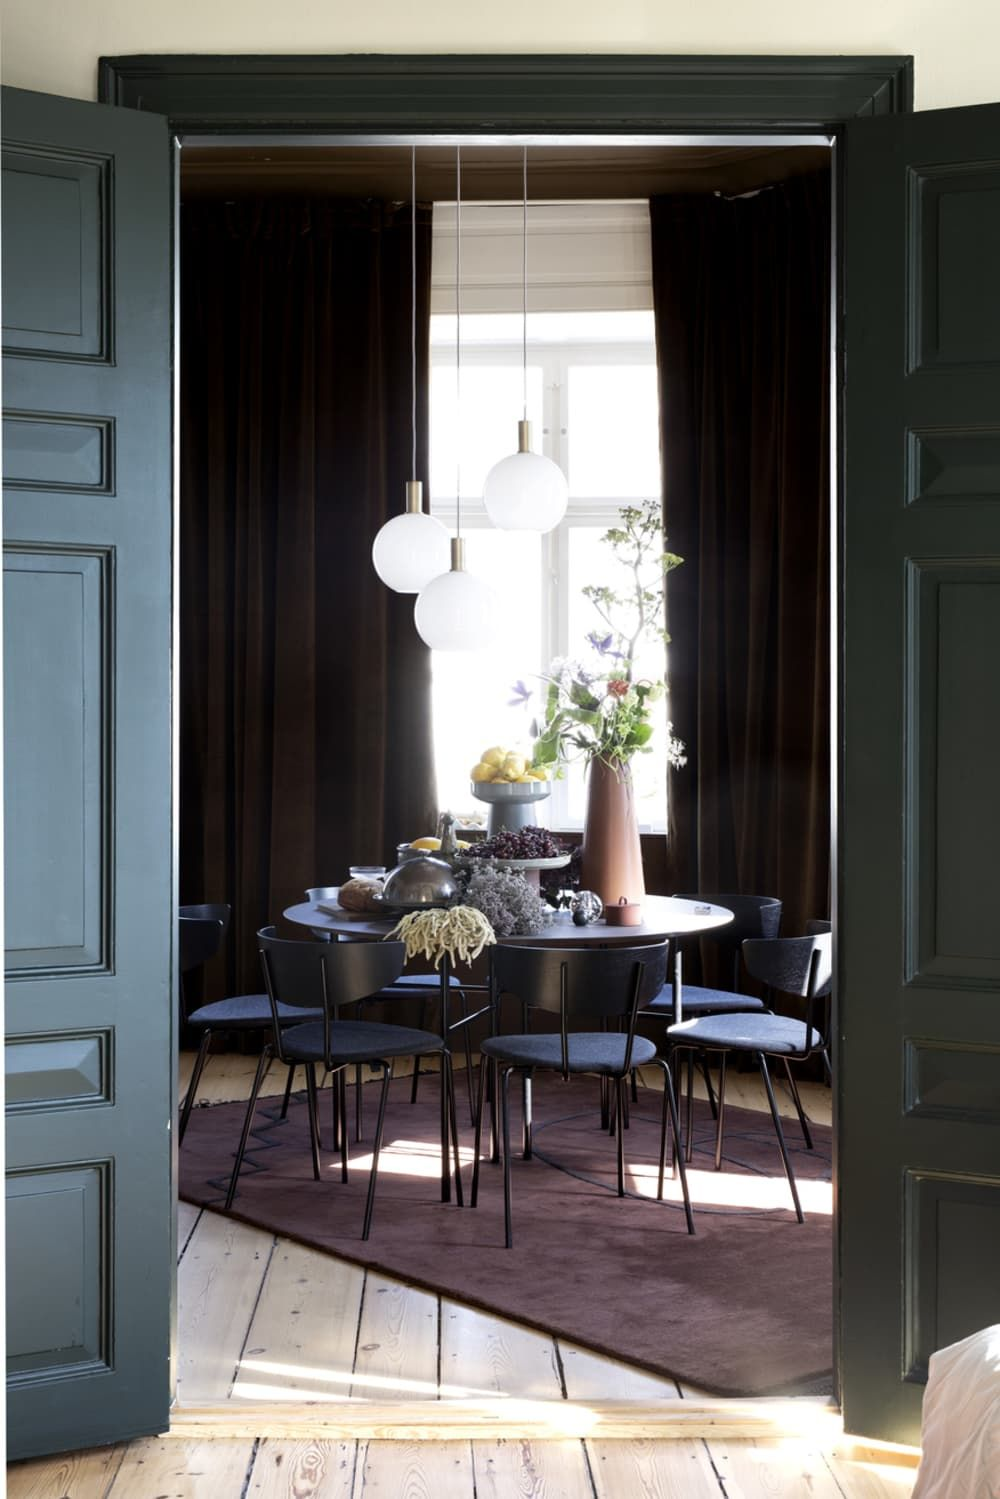 7 Great Sources For Scandinavian Furniture And Decor Interior Design London Home Interior Design Dining Table Pendant Light